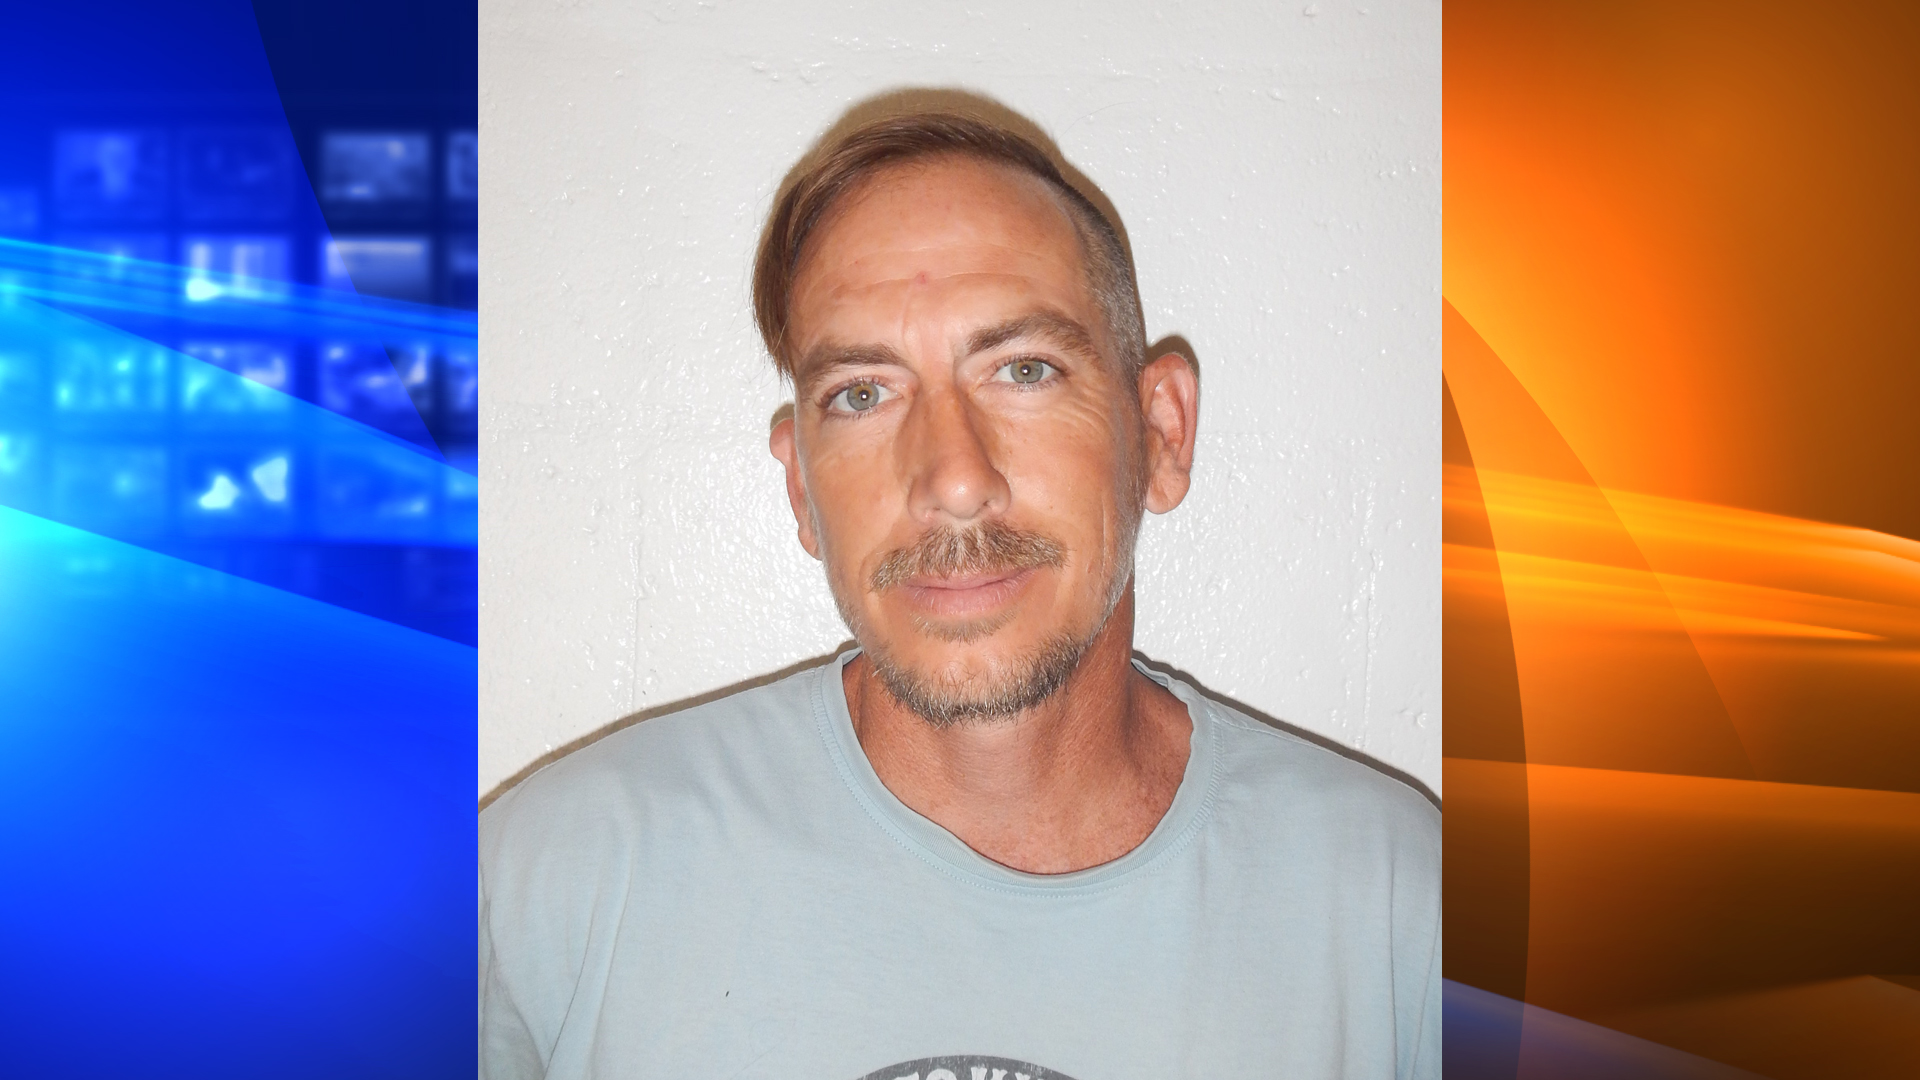 Marcus Kelly is shown in a photo released by the Seal Beach Police Department on June 22, 2021.